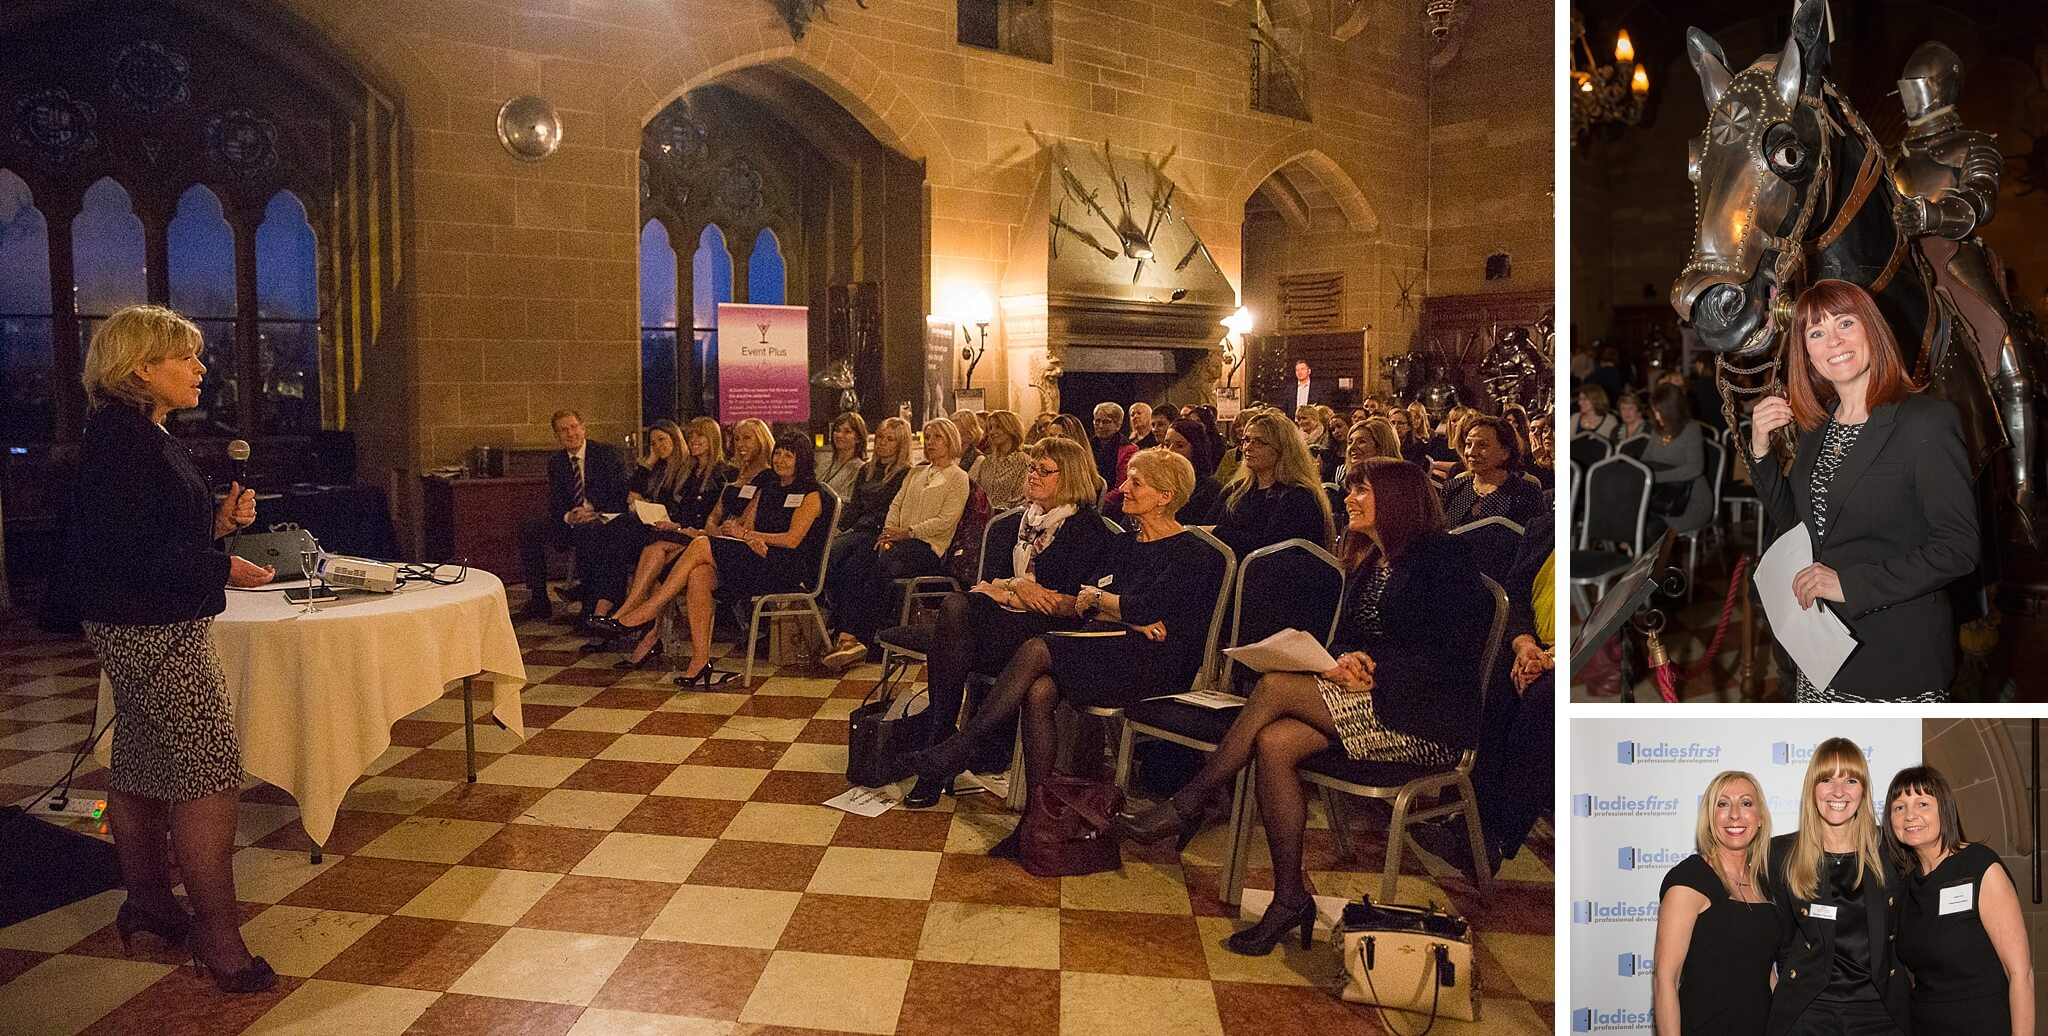 Networking-event-photos-Warwick-Castle